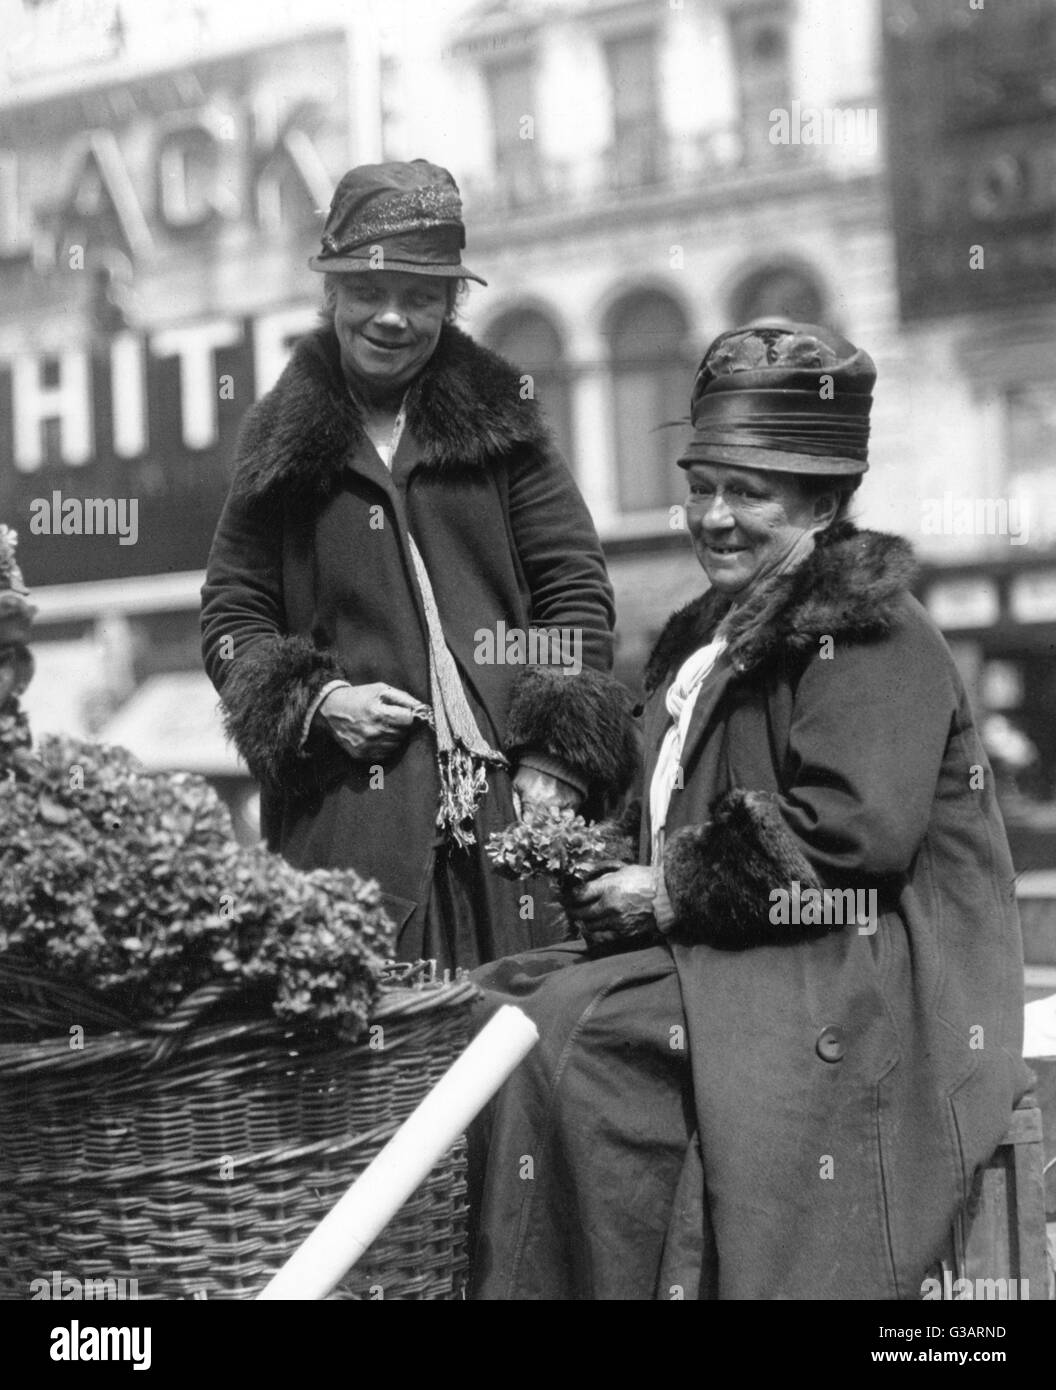 Dating in the 1920s and 1930s